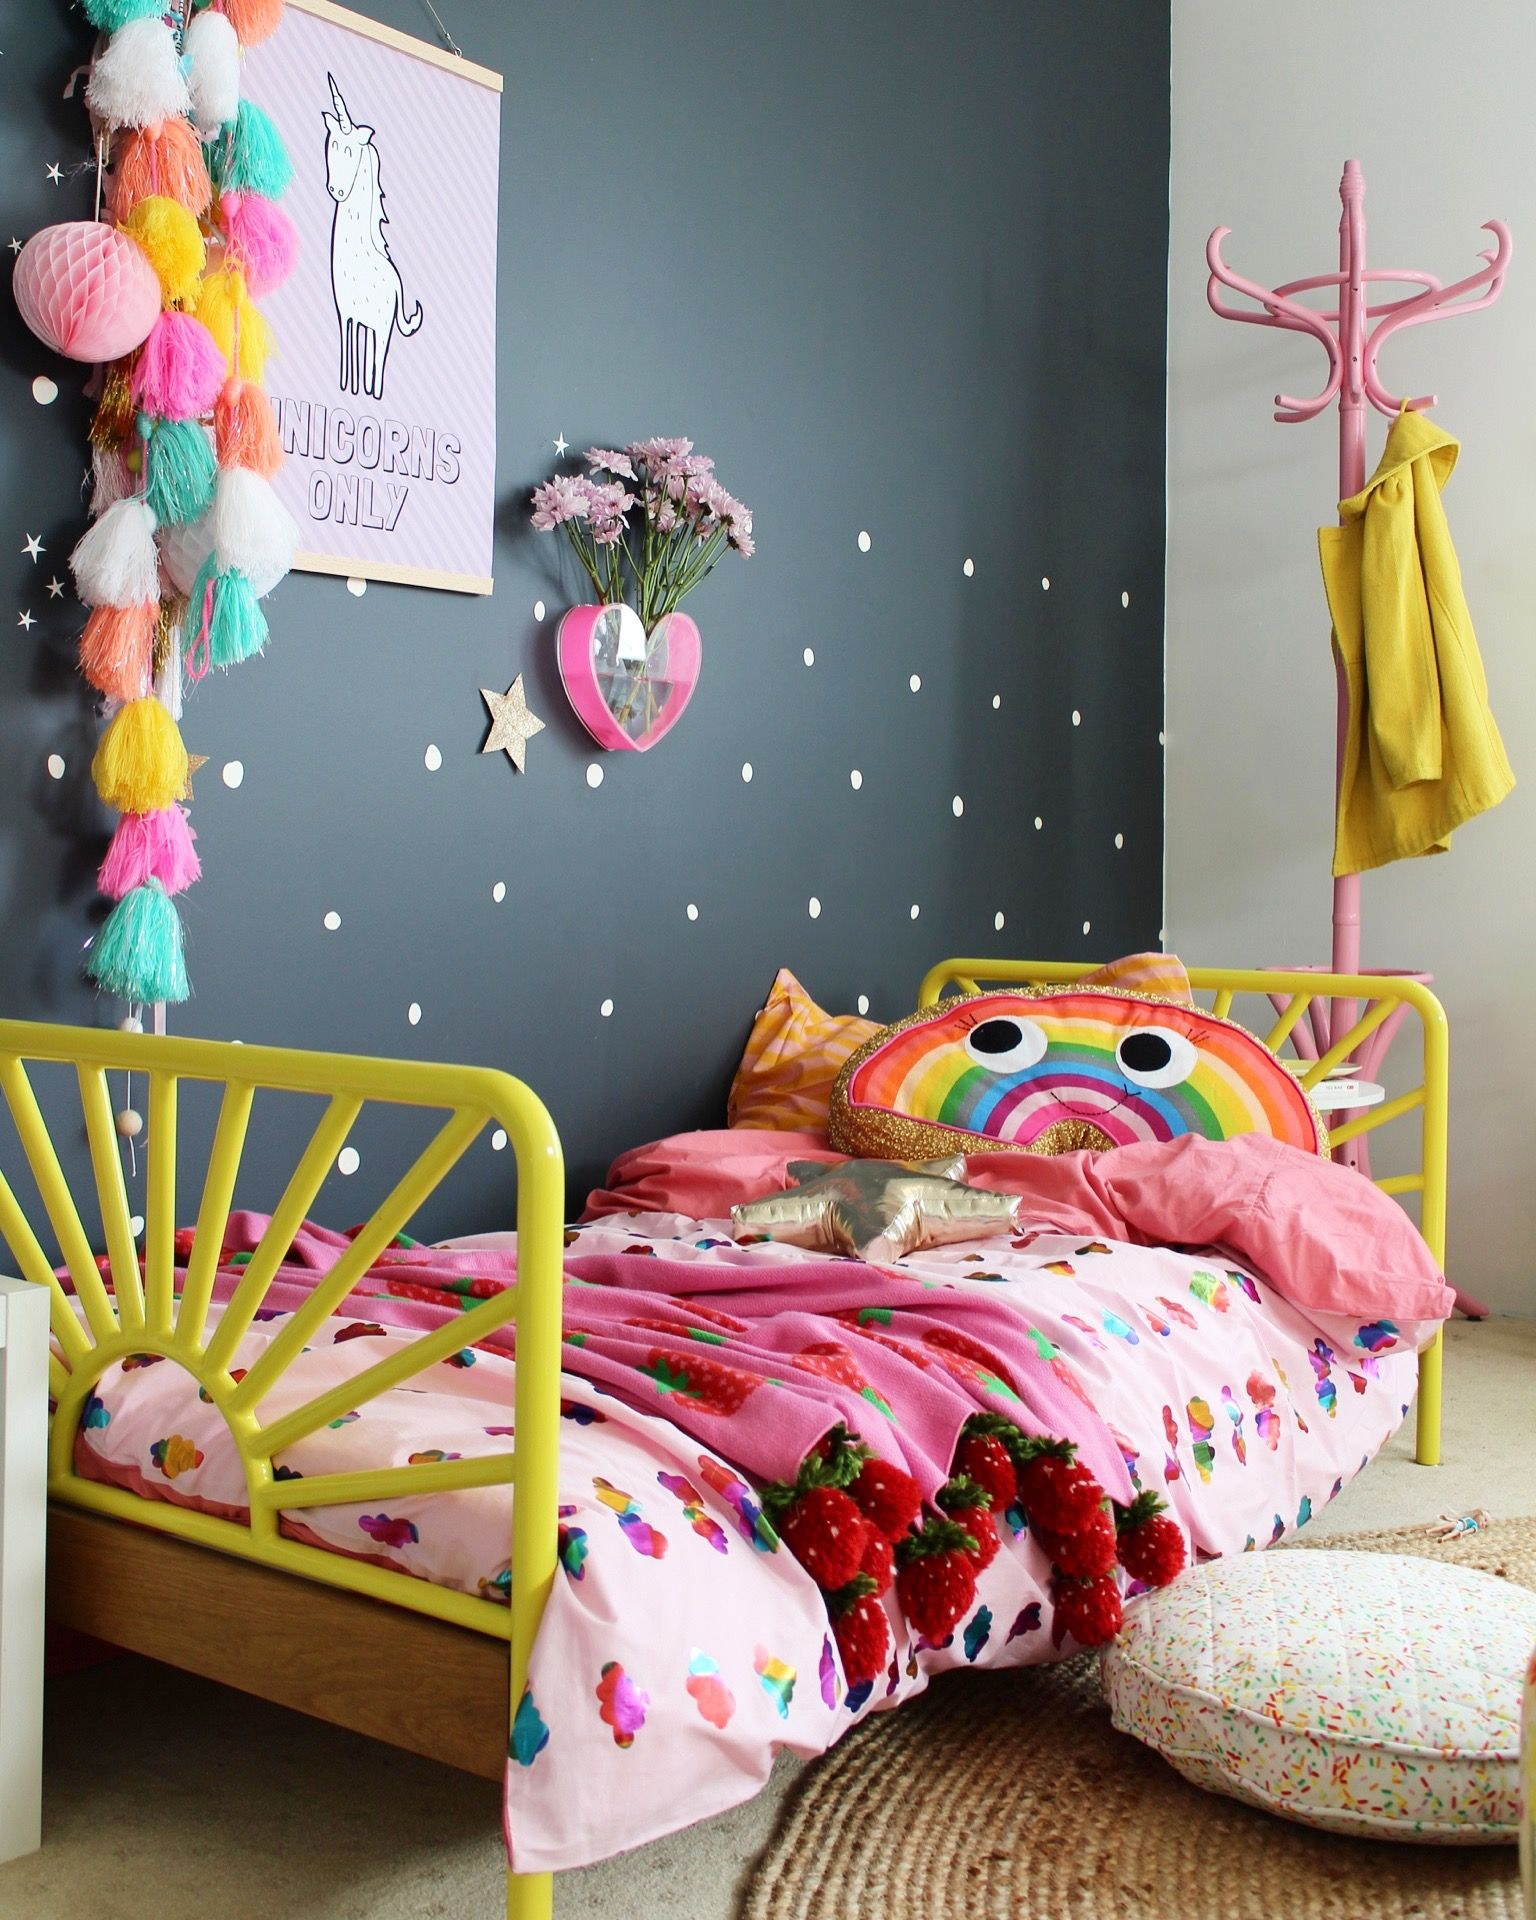 Girls room decor diy girls room decor ideas tween 10 years old little toddler